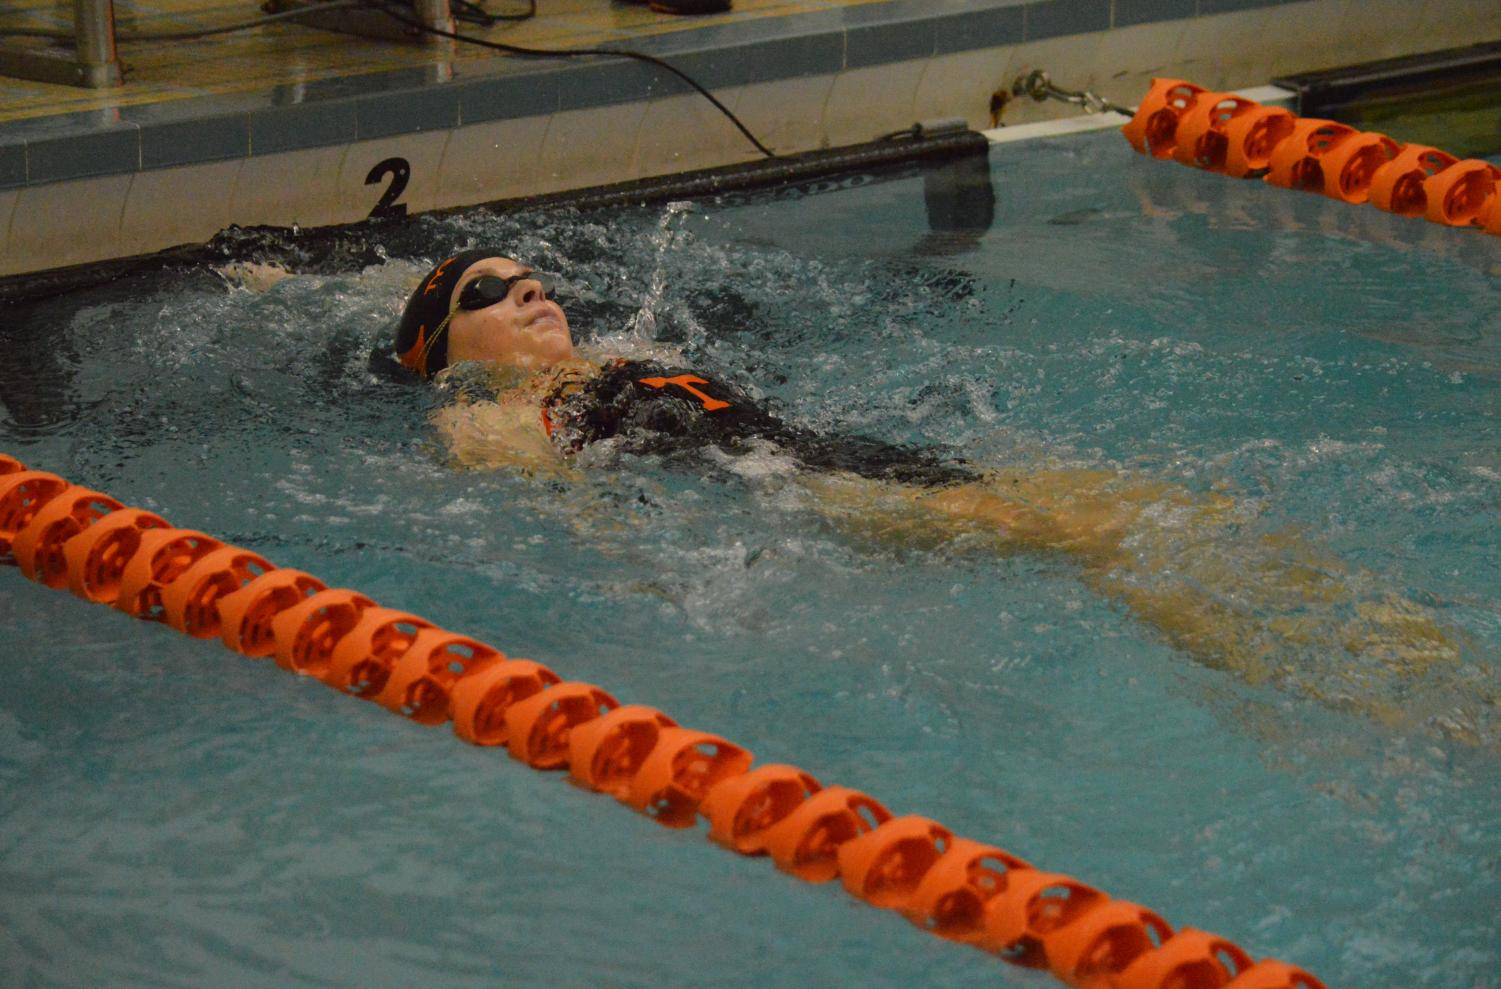 Cate+Baran%2C+TAHS+junior%2C+has+a+strong+finish+in+the+100+backstroke.